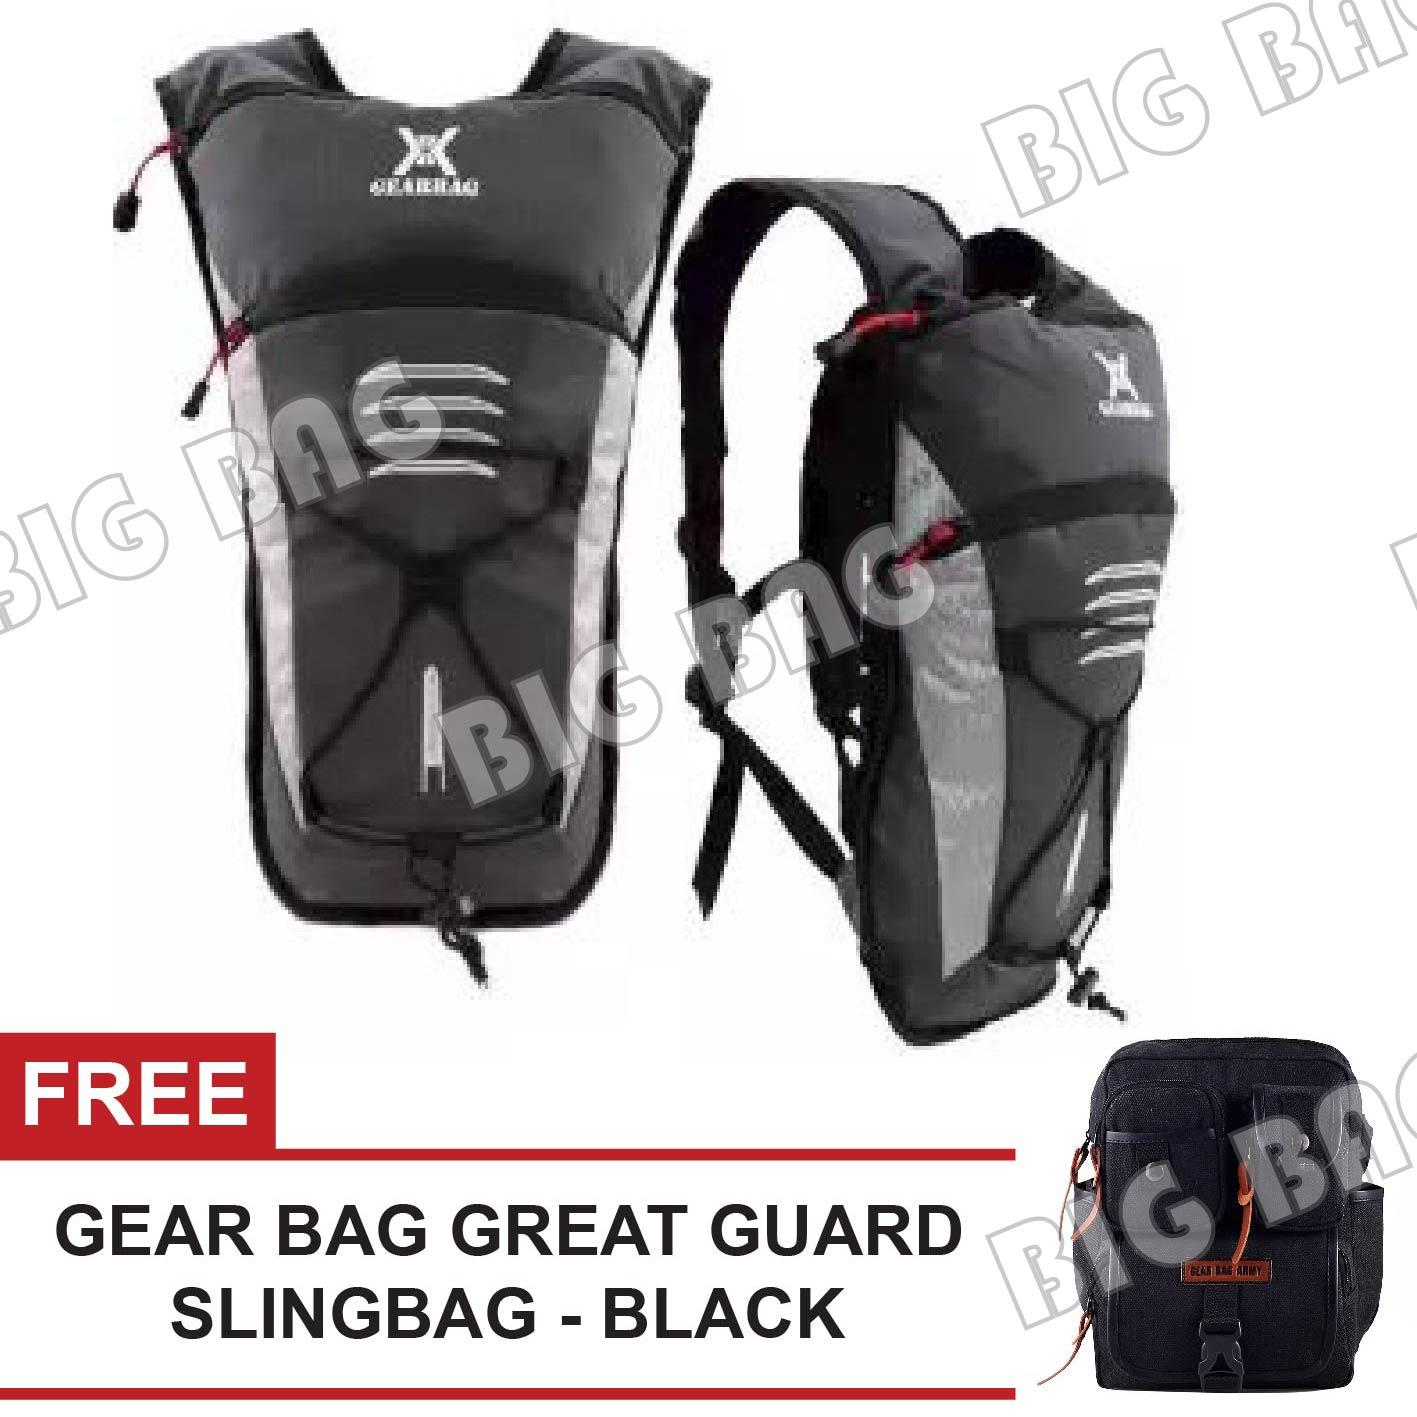 Gear Bag - Gimondi Hydropack Cycling Backpack + FREE Gear Bag Great Guard Army Slingbag - Black Tas Sepeda Ransel Tas Sepeda Ransel Best Seller Tas Fashion Pria